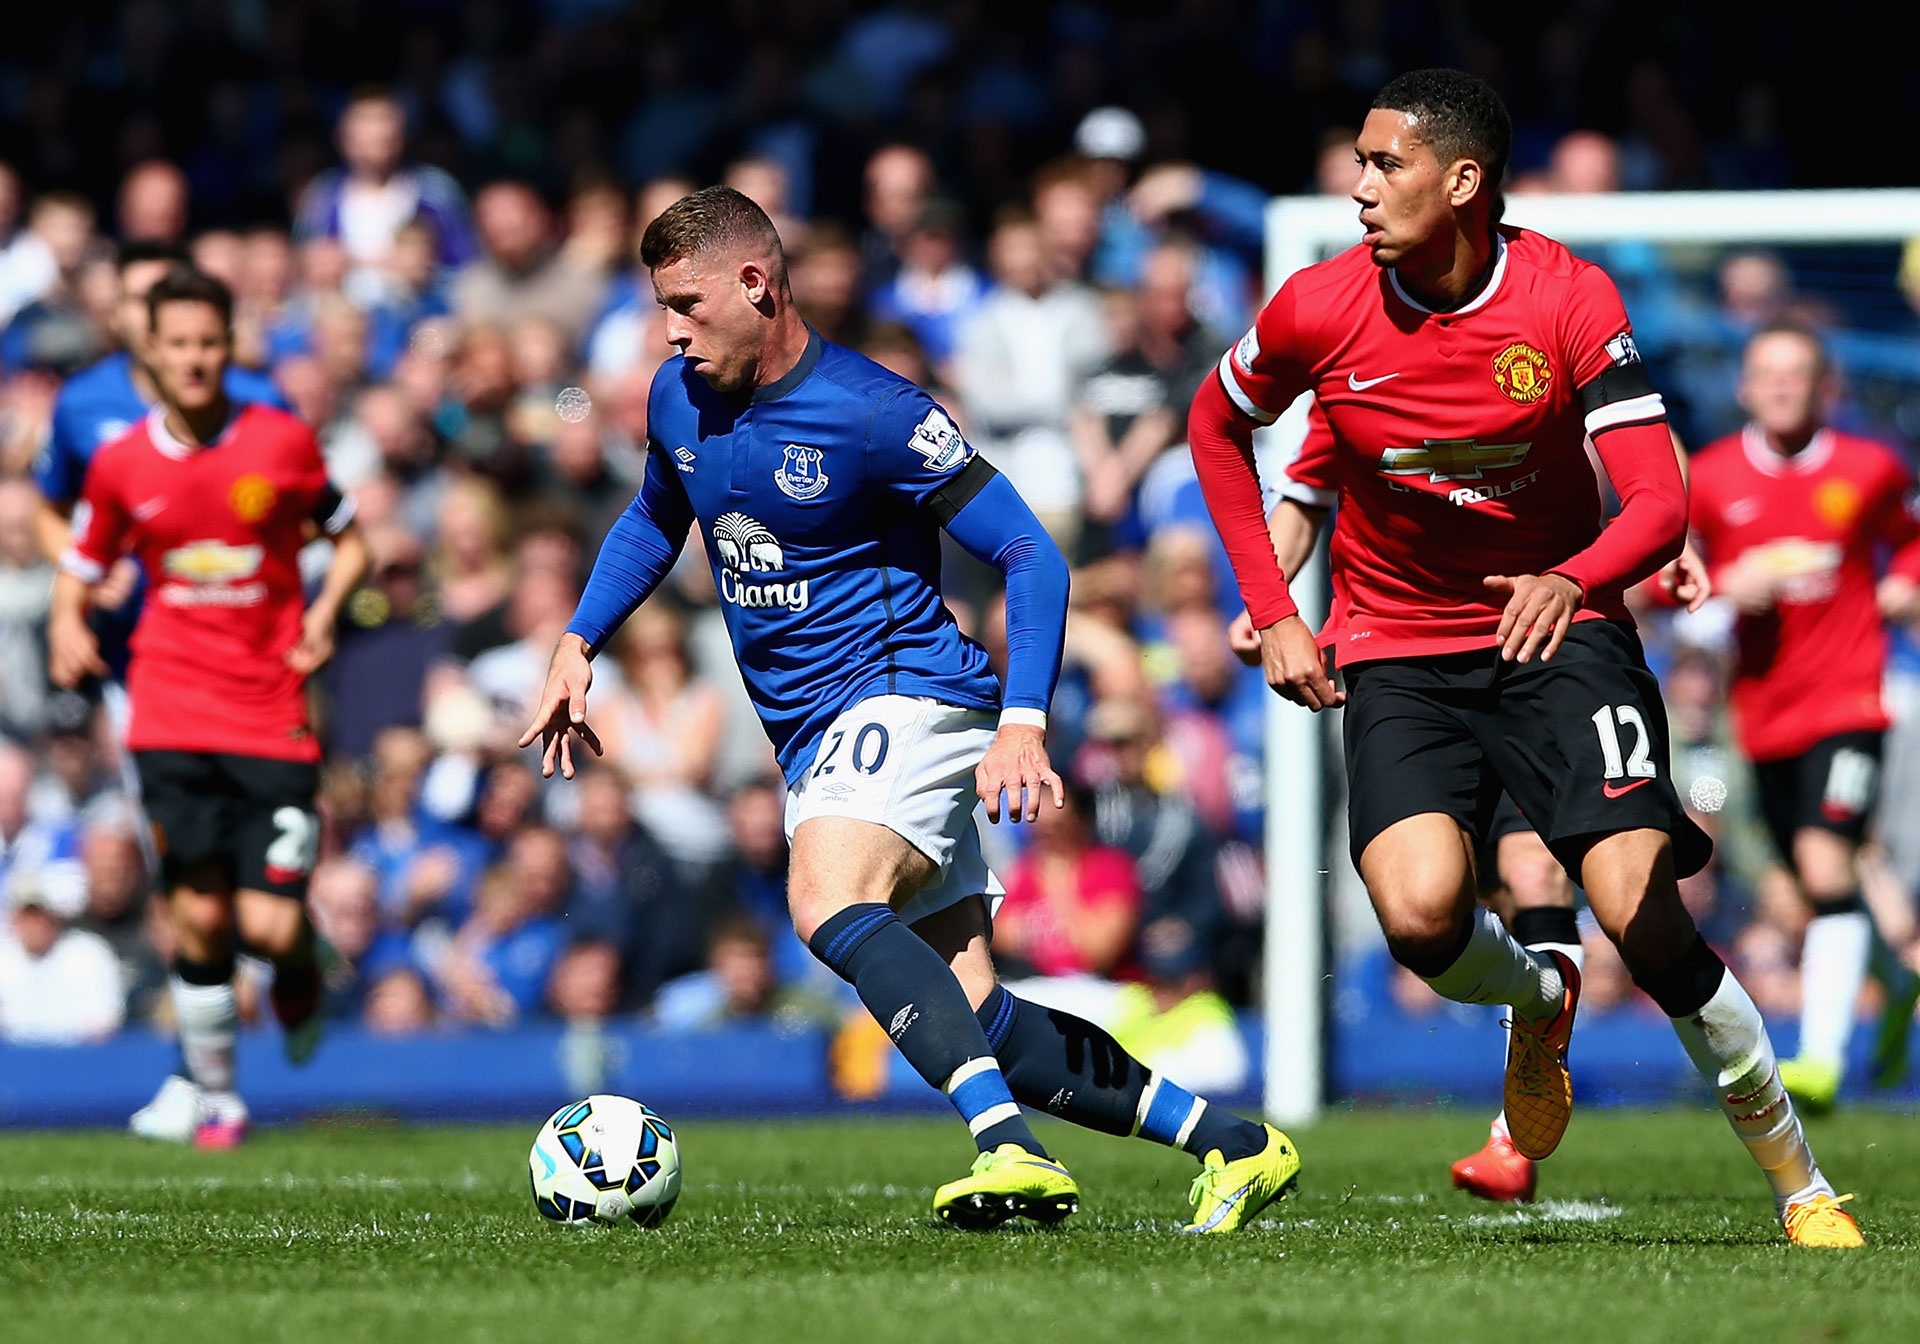 Ross Barkley Chris Smalling Everton Manchester United English Premier League 06042015